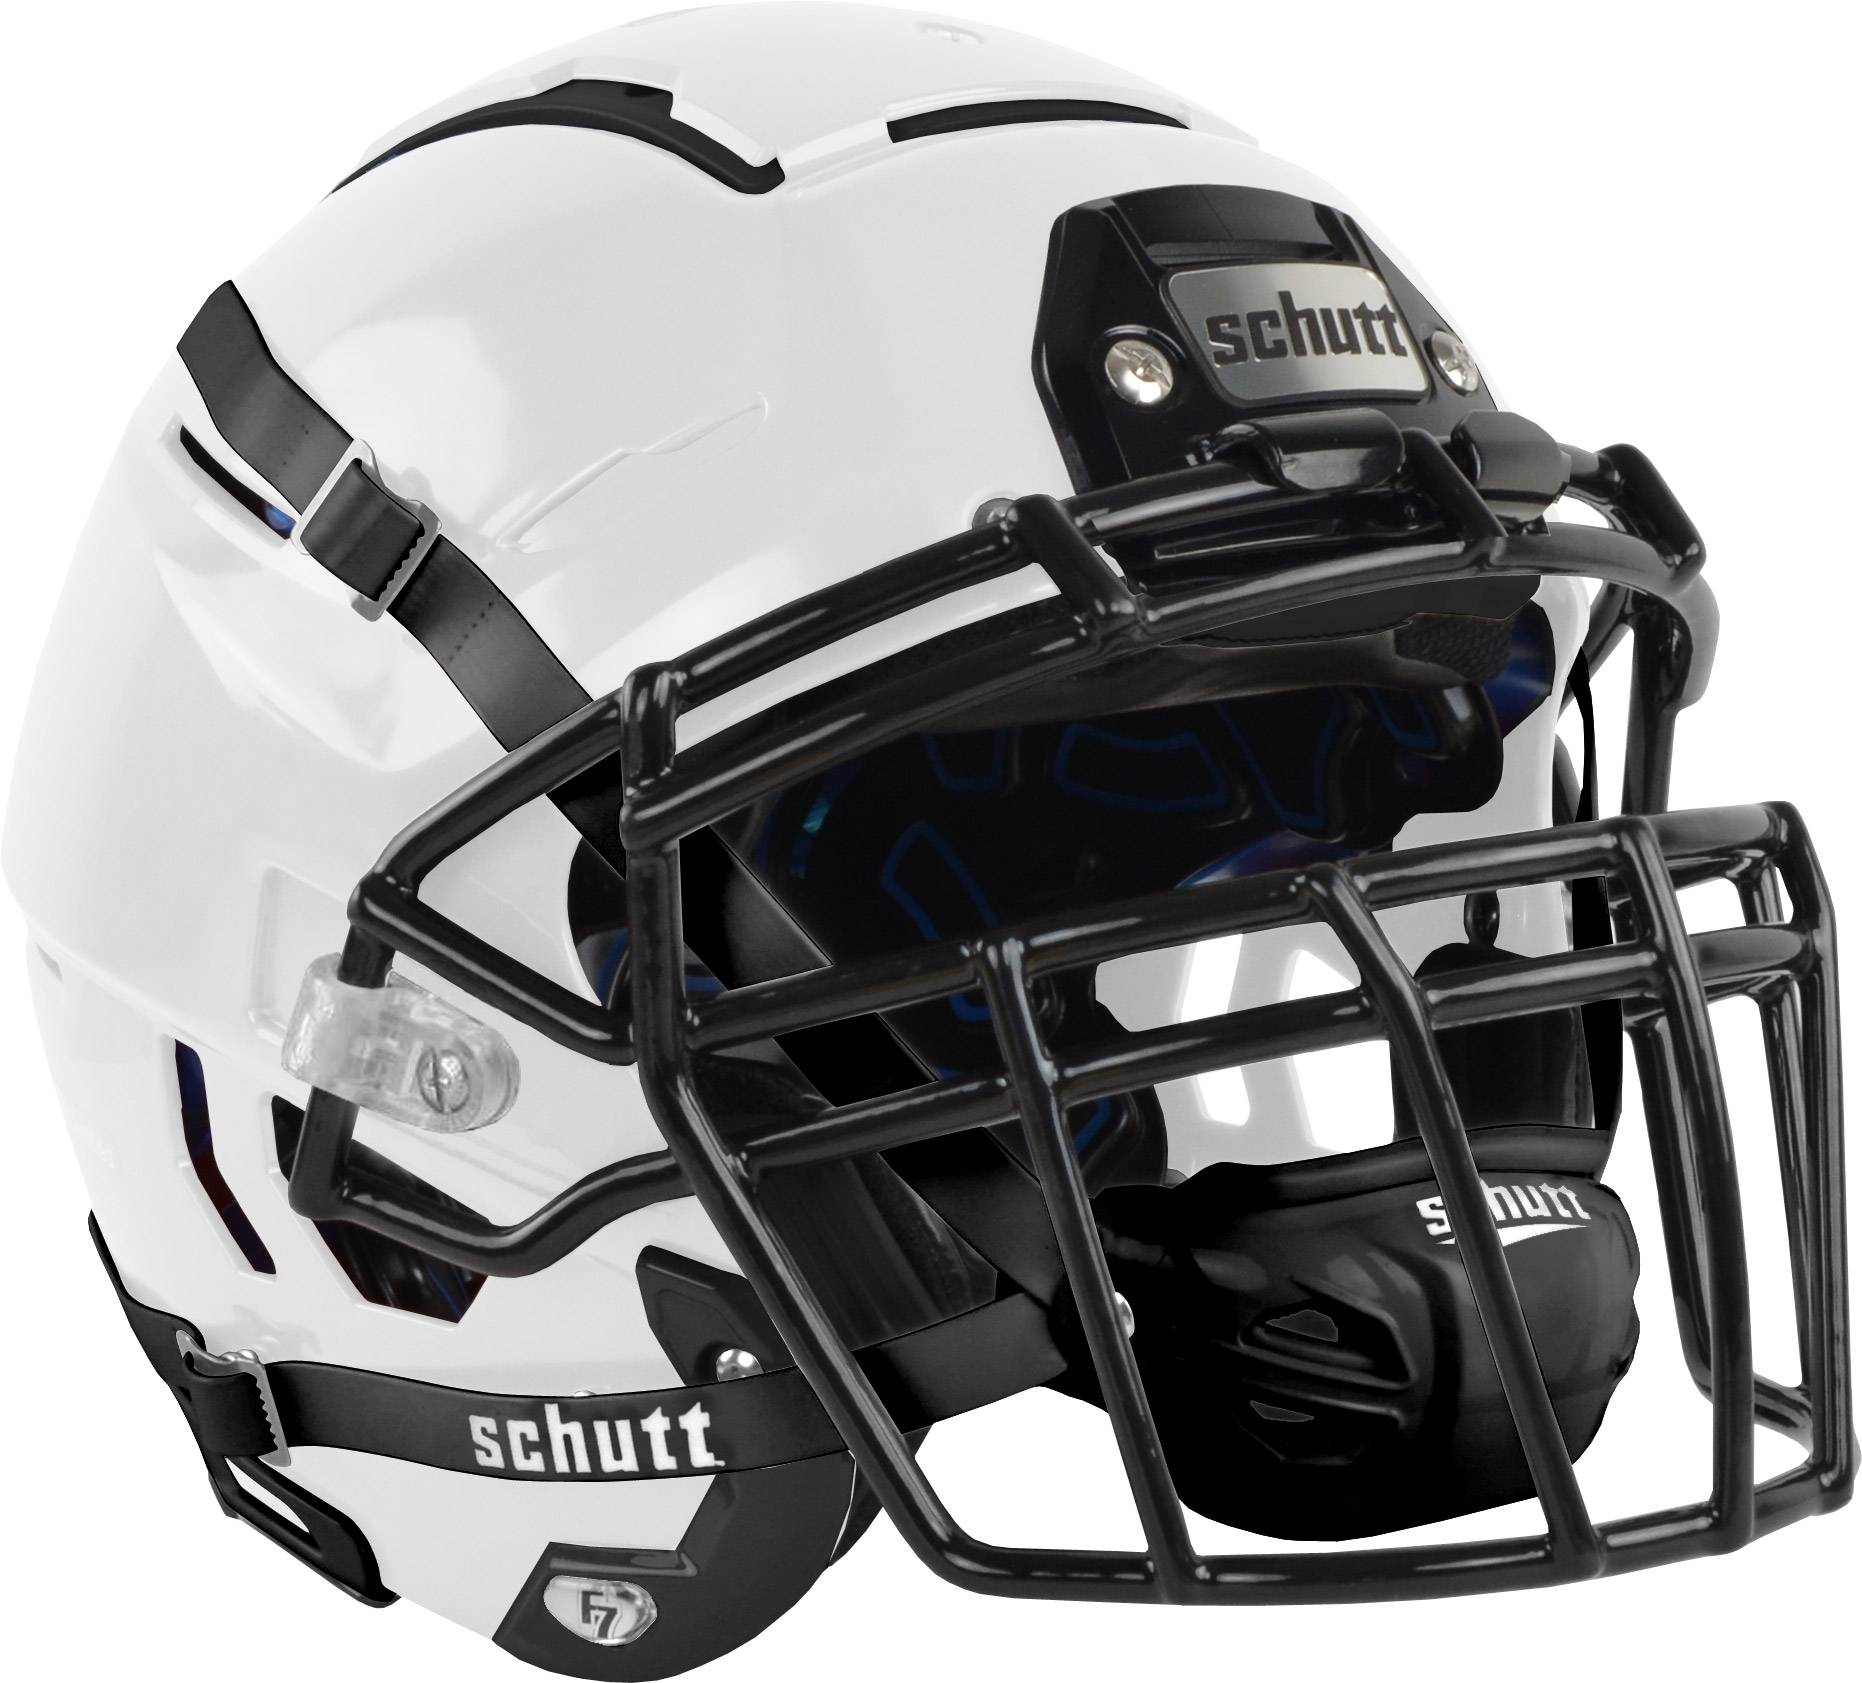 470586720f2 Schutt F7 Adult Football Helmet - Sports Unlimited